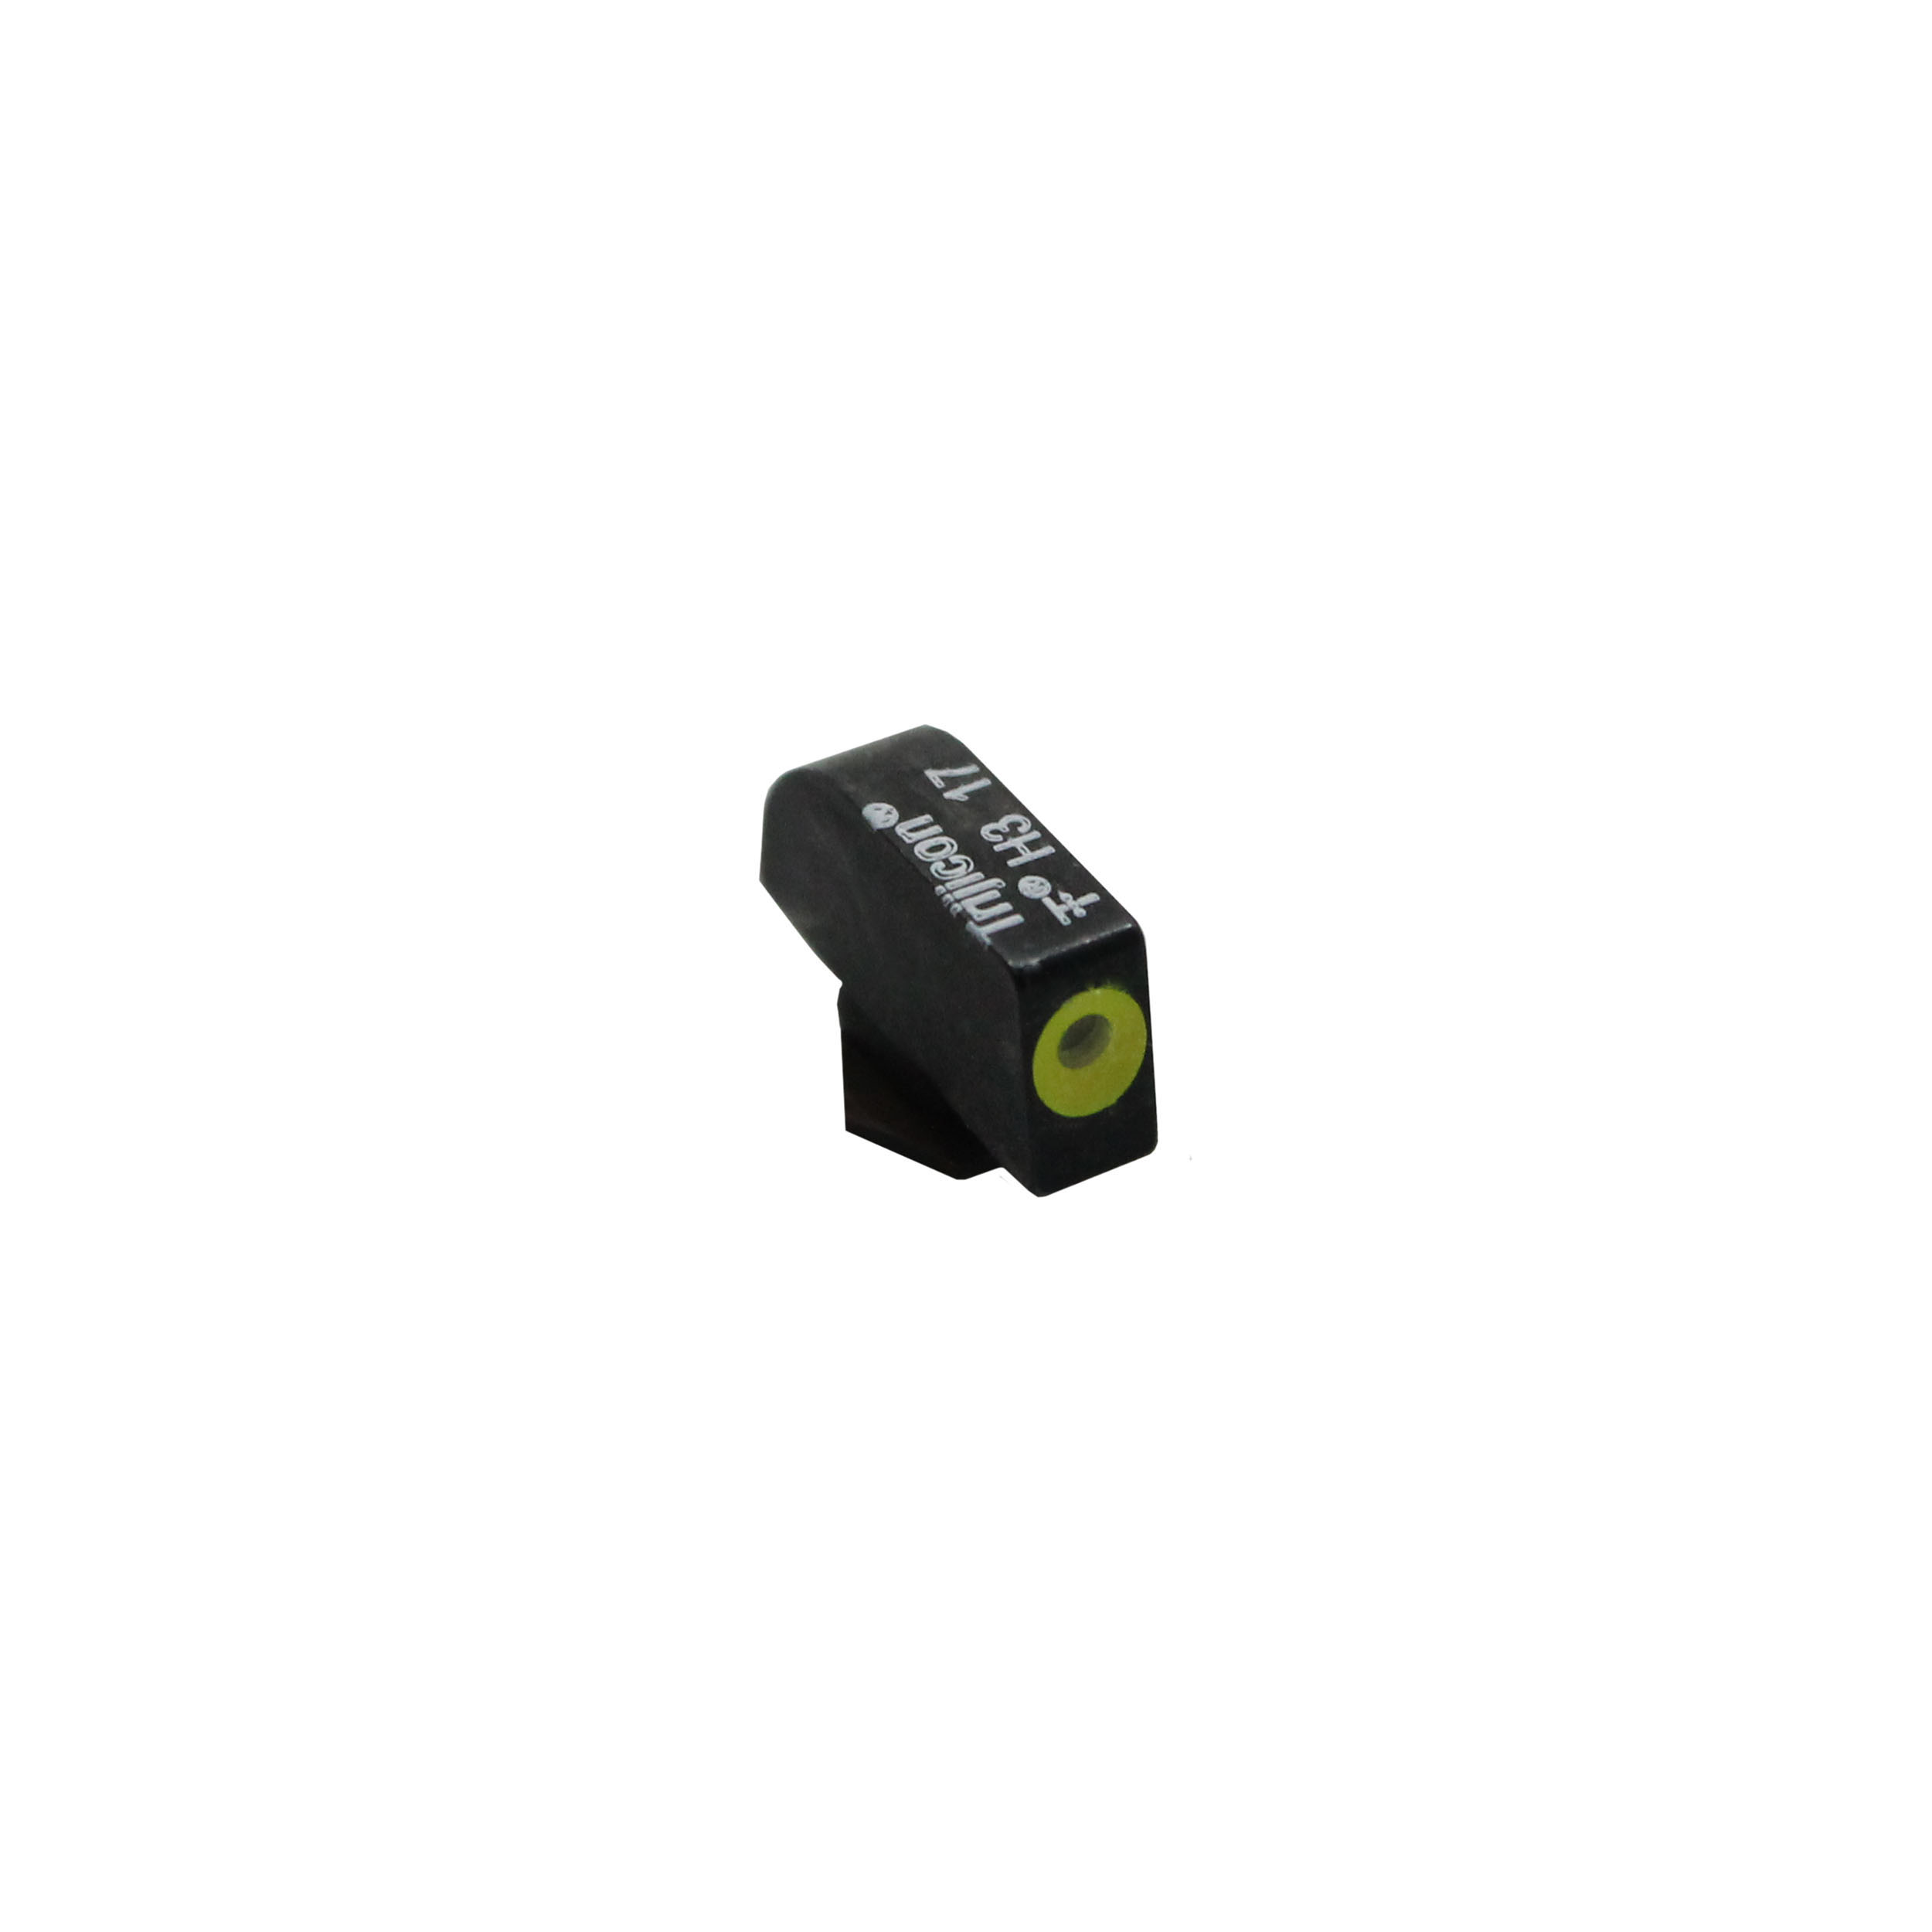 Trijicon HD XR Front Sight Glock Models 17-39, Yellow Front Outline Lamp by Trijicon